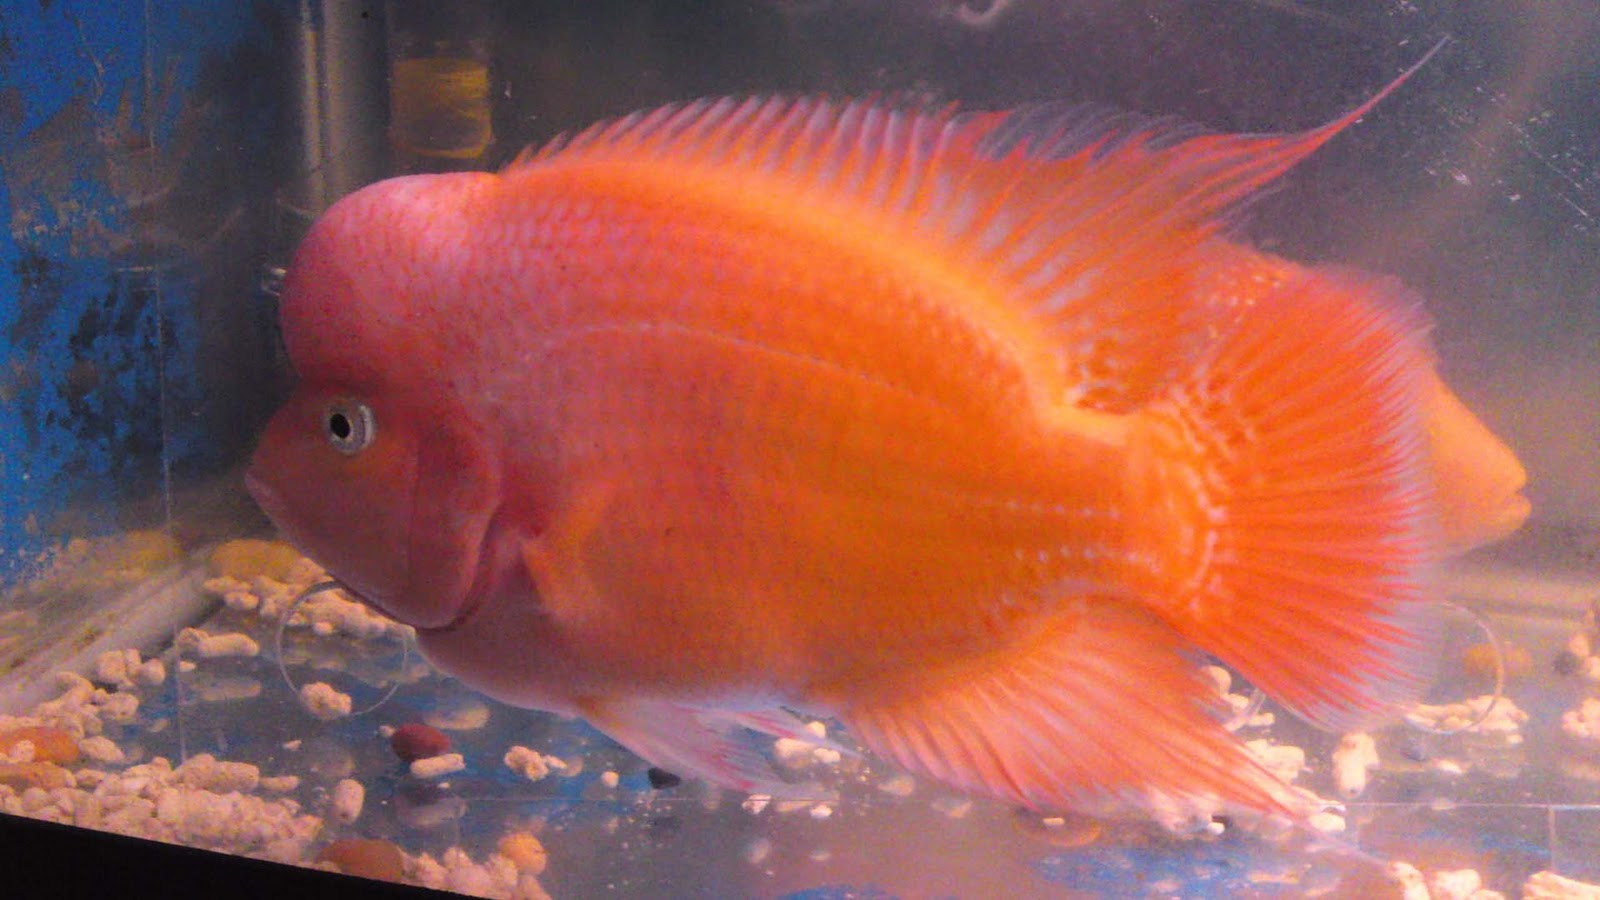 Cozy Flowerhorn The Hybrid Cichlids Louhan Red Monkey - Ivoiregion